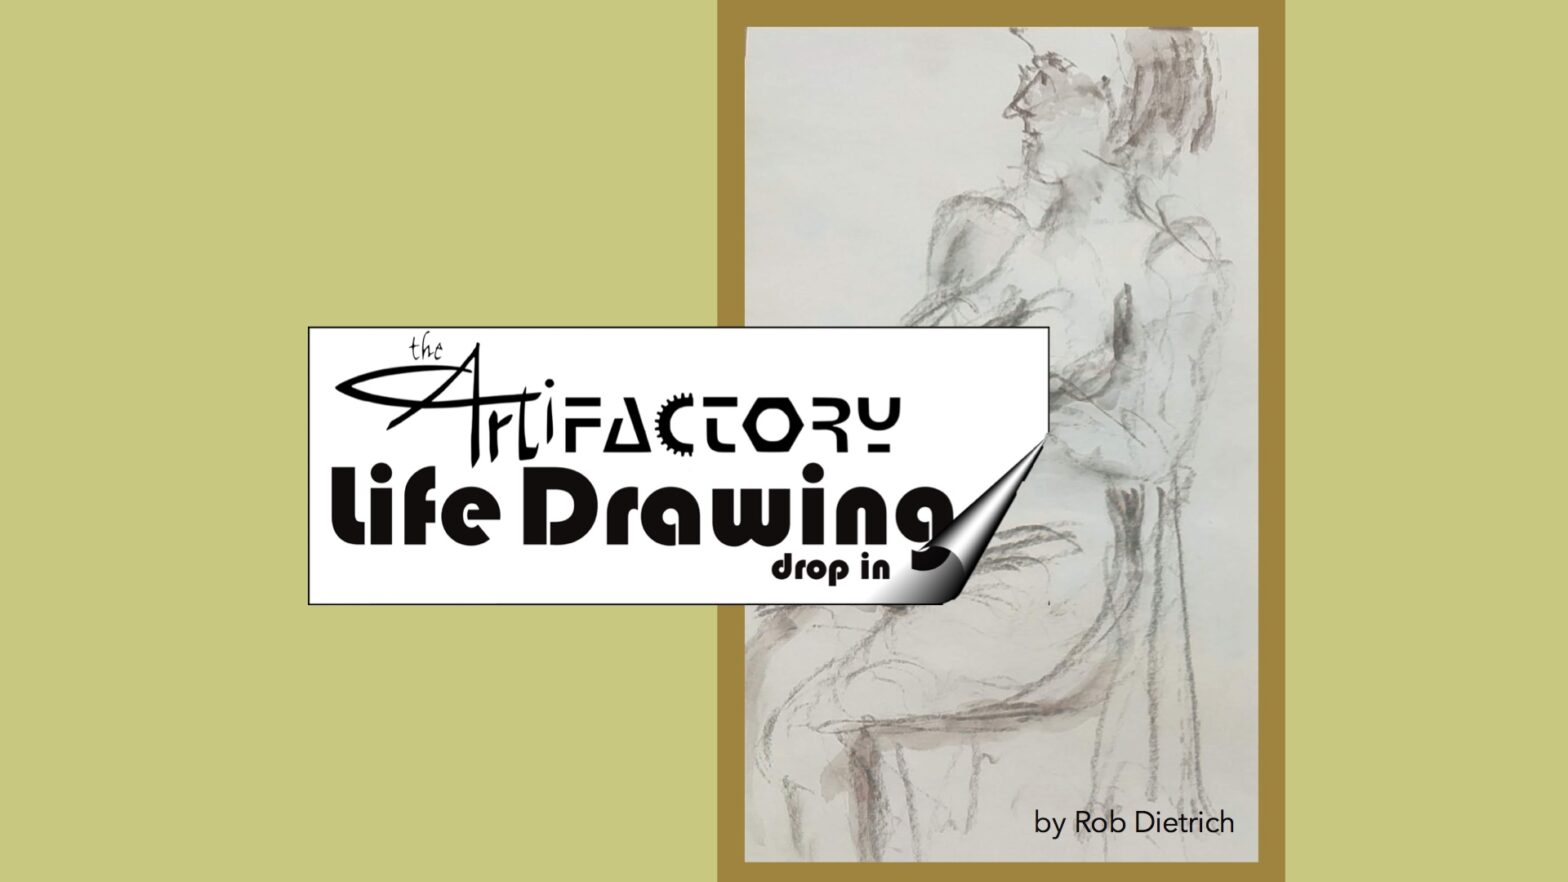 Upcoming Life Drawing